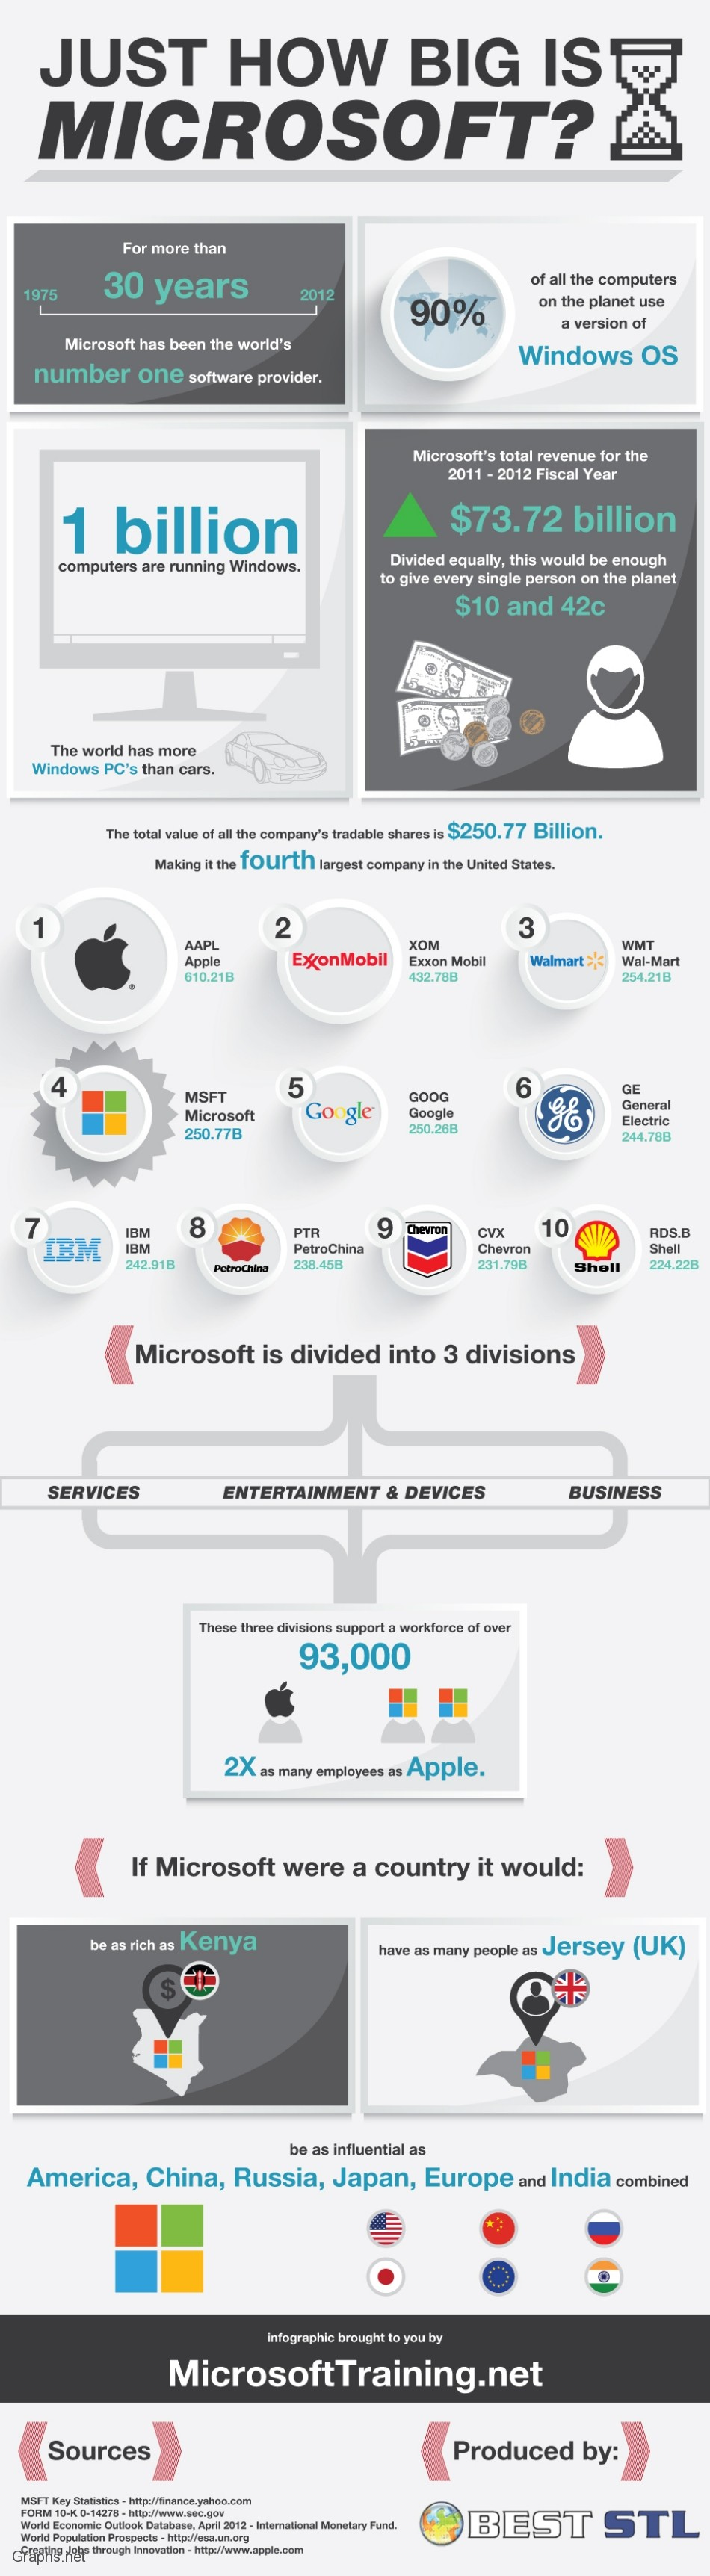 Microsoft - World's Largest Software Provider